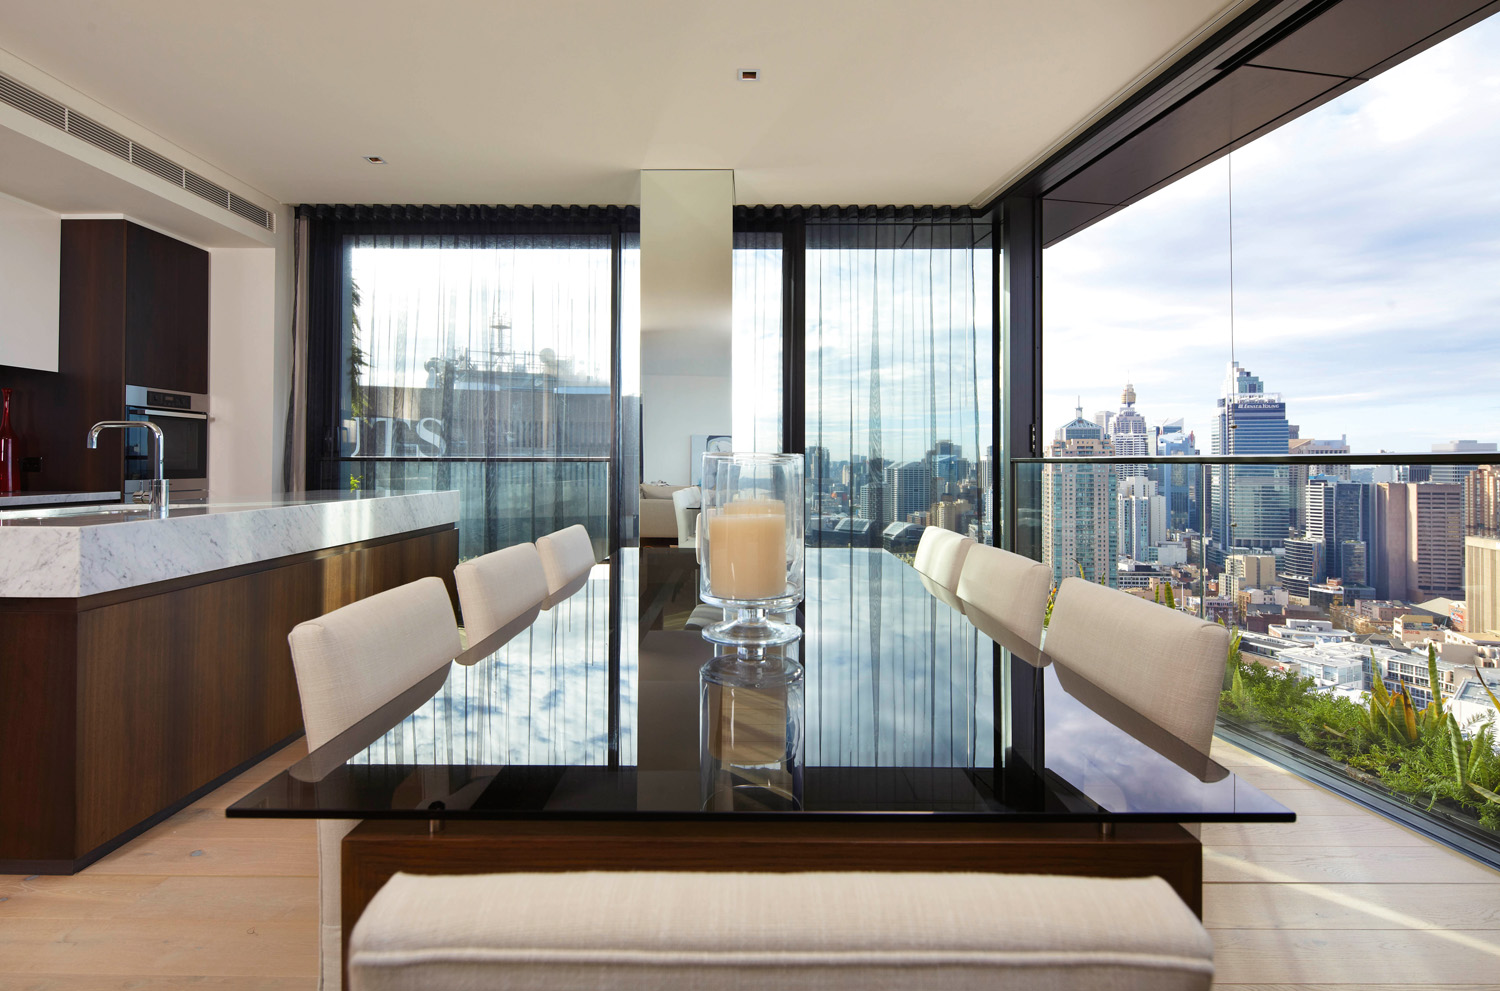 Real penthouse: Sky high